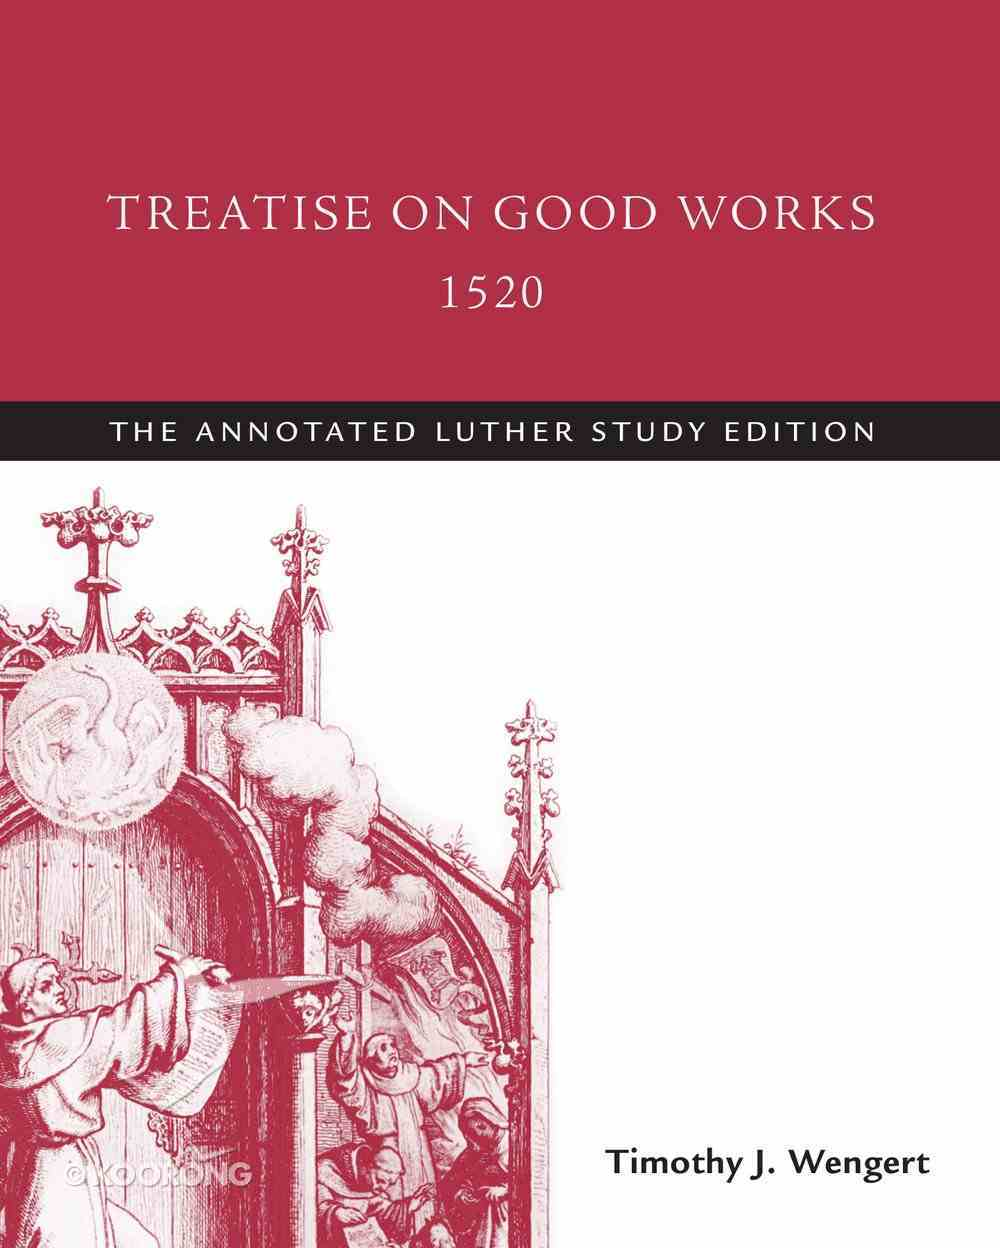 Treatise on Good Works, 1520 (The Annotated Luther Series) eBook